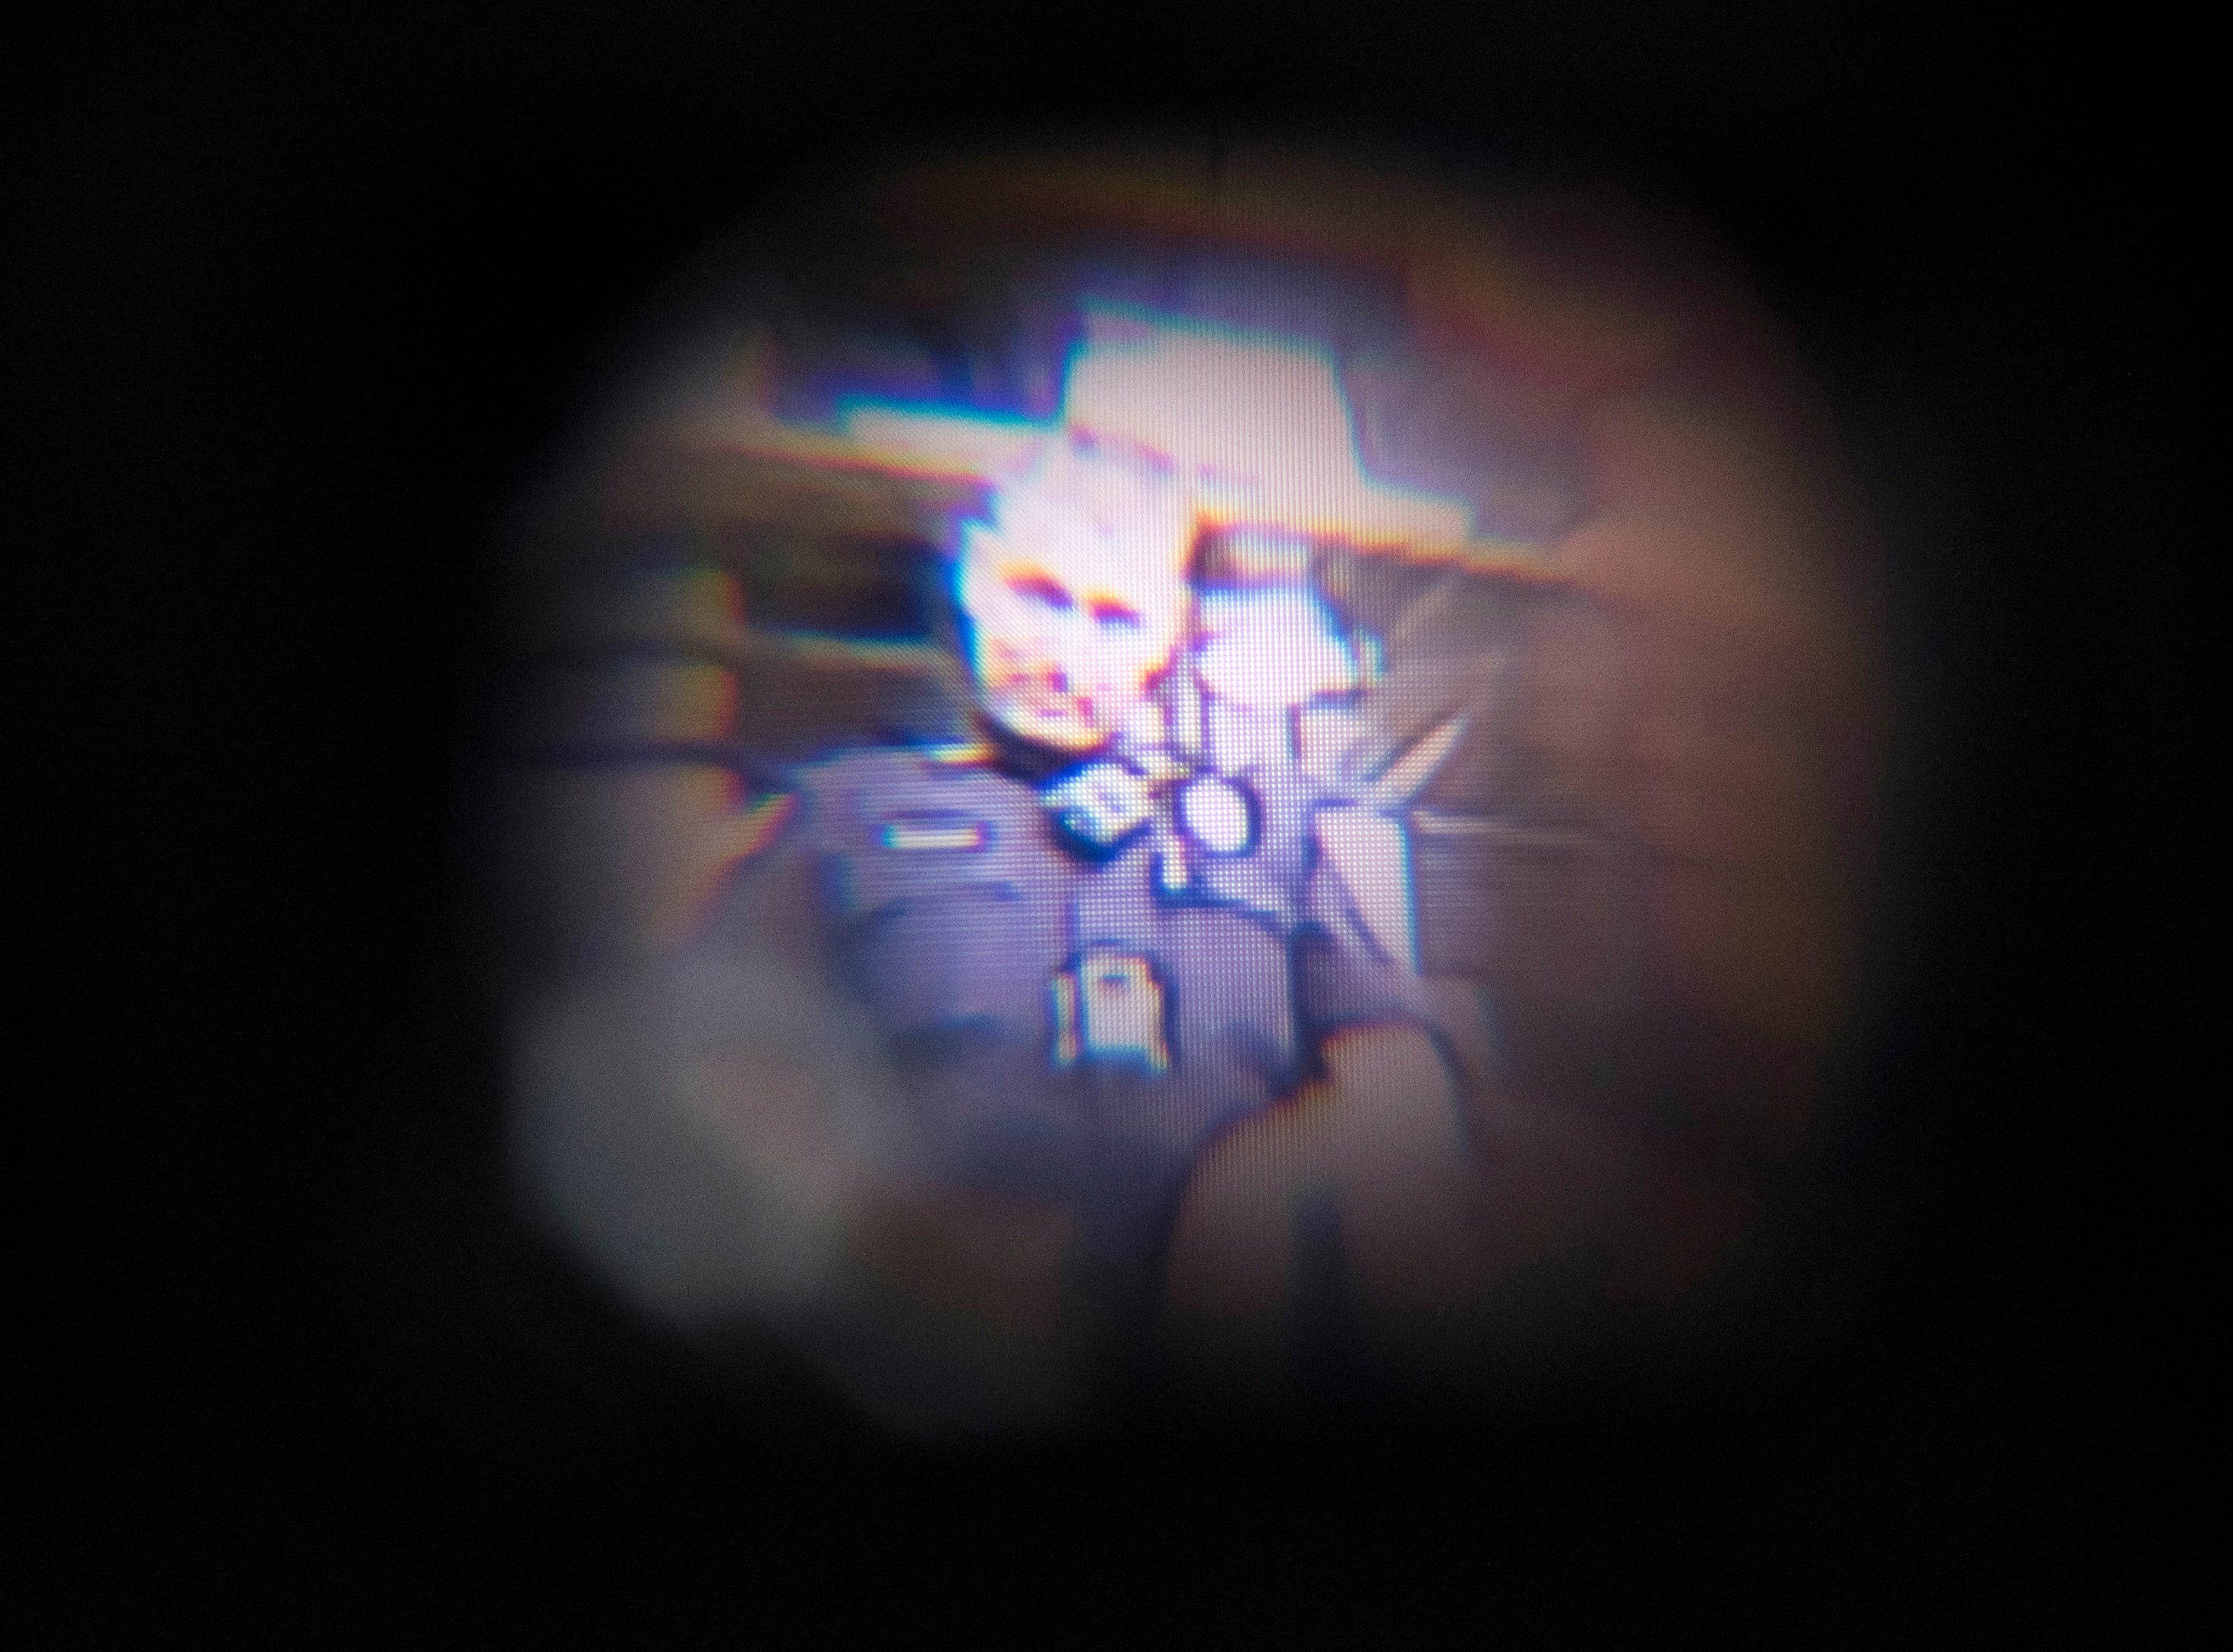 A camera view of an image transmitted to a drone operator's headset during a demonstration of the technology by the Institute For Human and Machine Cognition for the Pensacola Police Department on Thursday, Aug. 16, 2018.